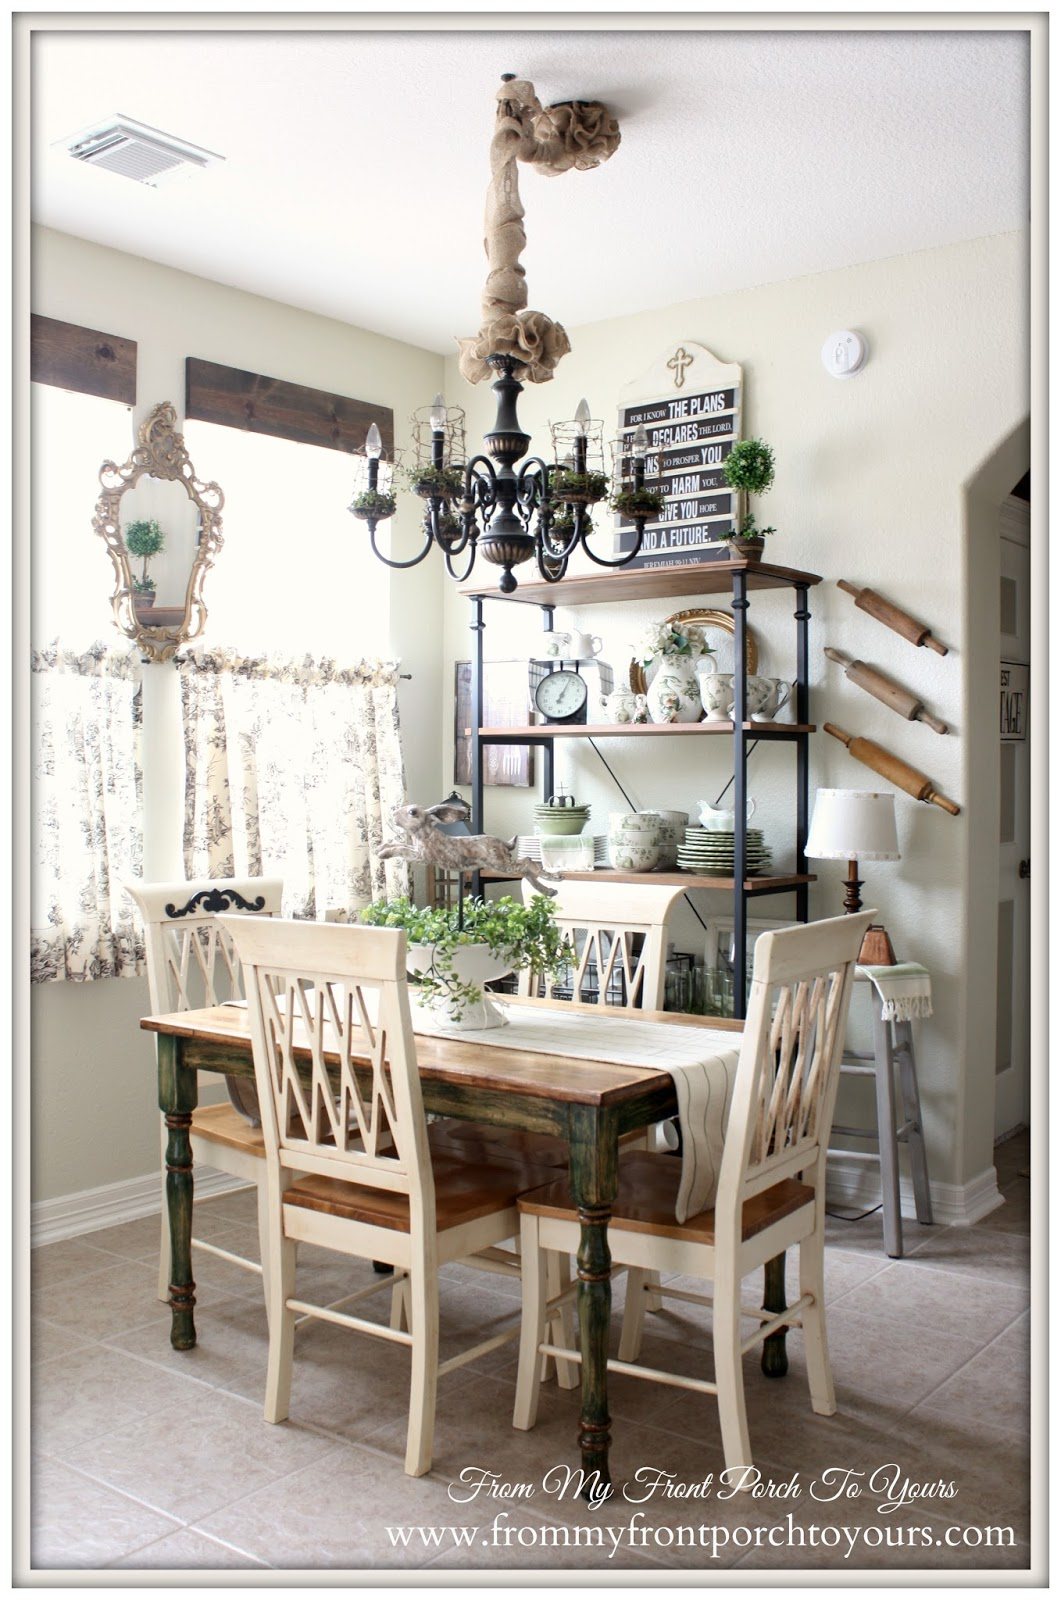 French Farmhouse Spring Breakfast Nook- From My Front Porch To Yours